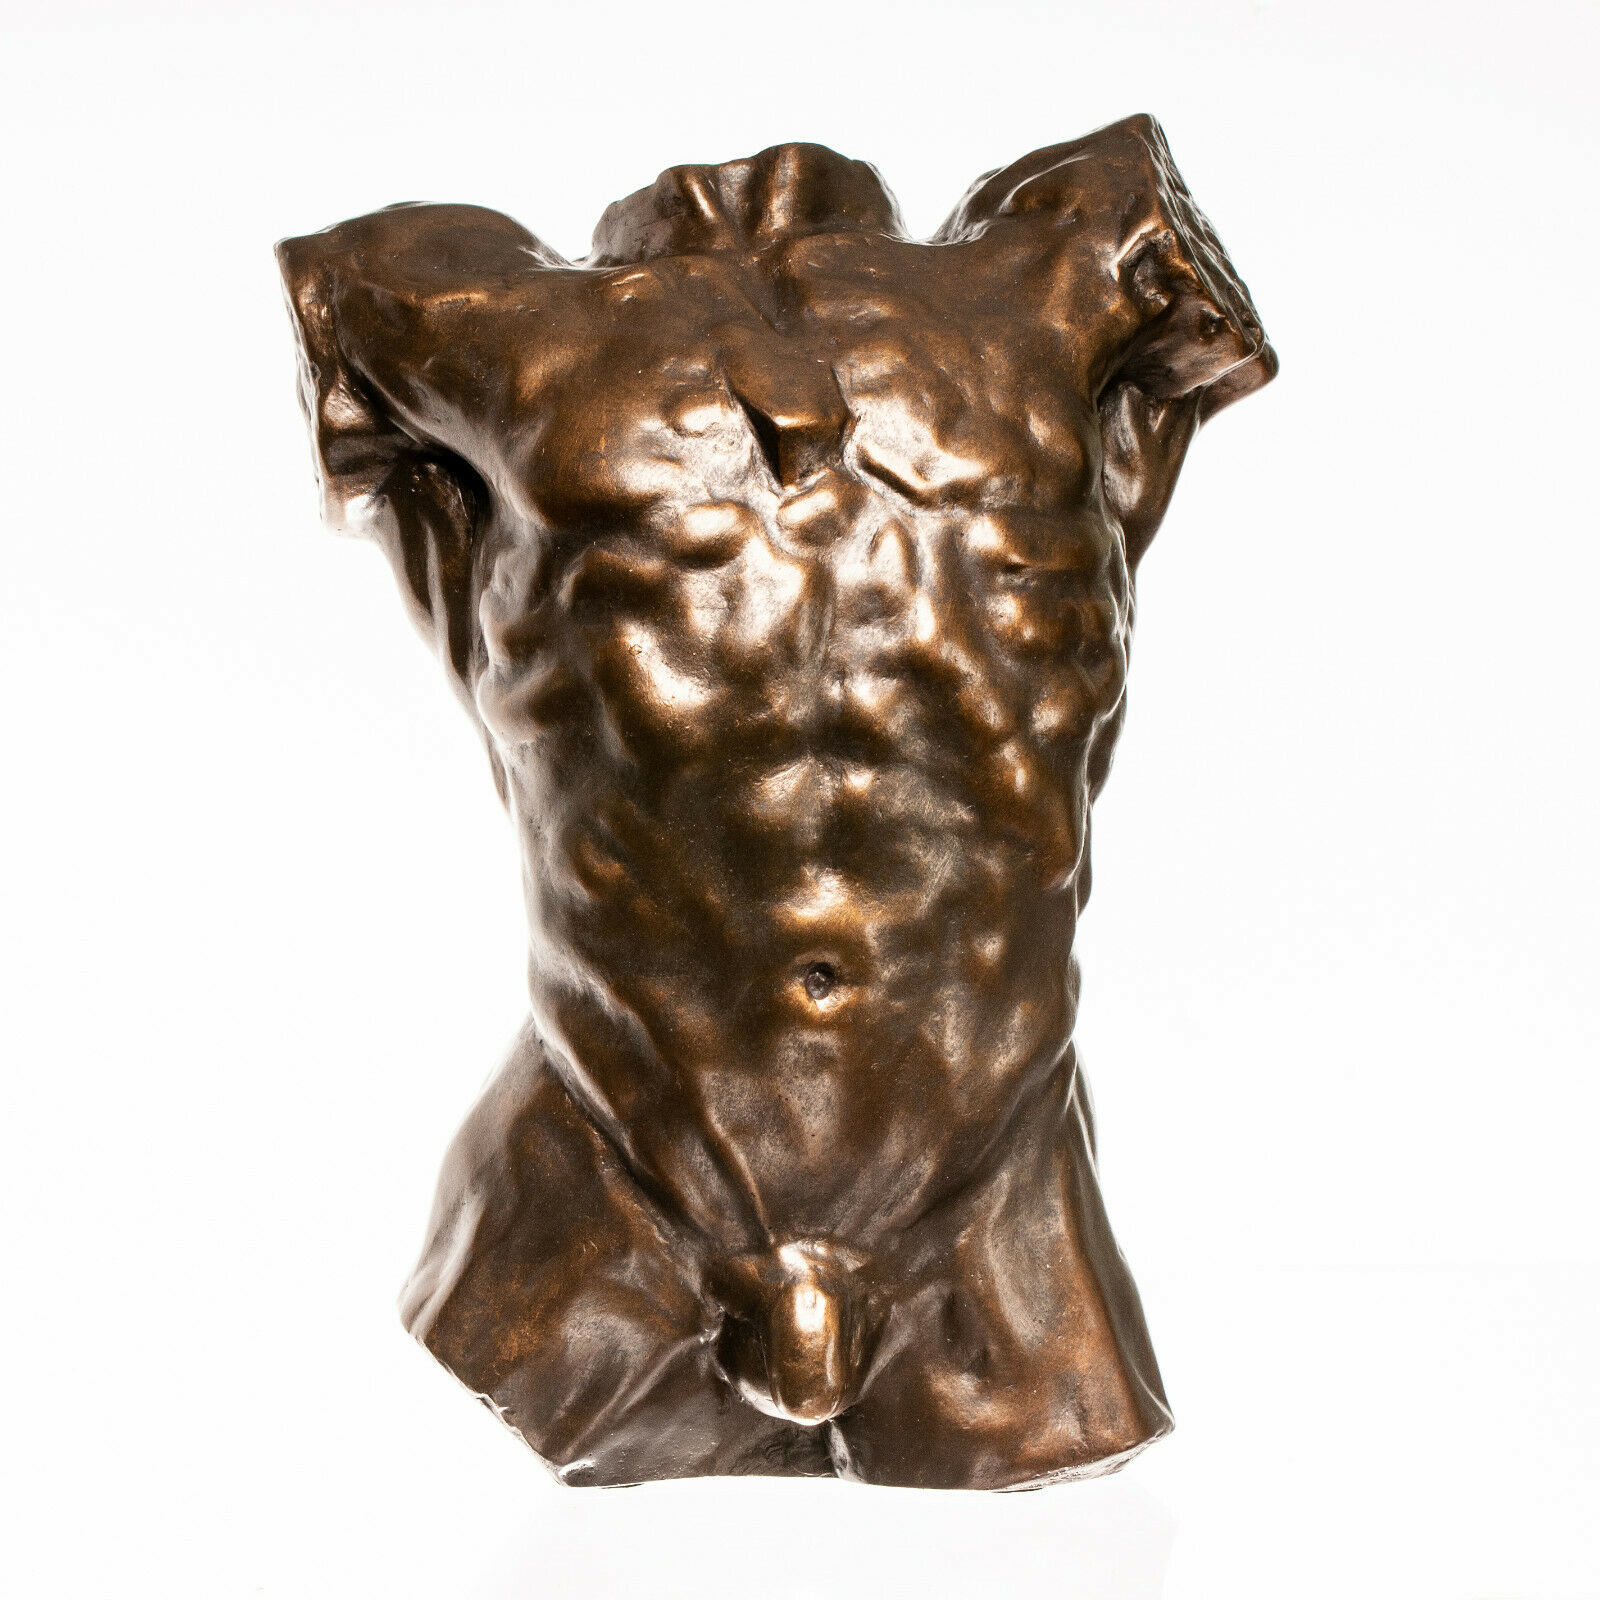 Erotic Male Torso By Auguste Rodin, Classical Sculpture, Gift, Art, Ornament.